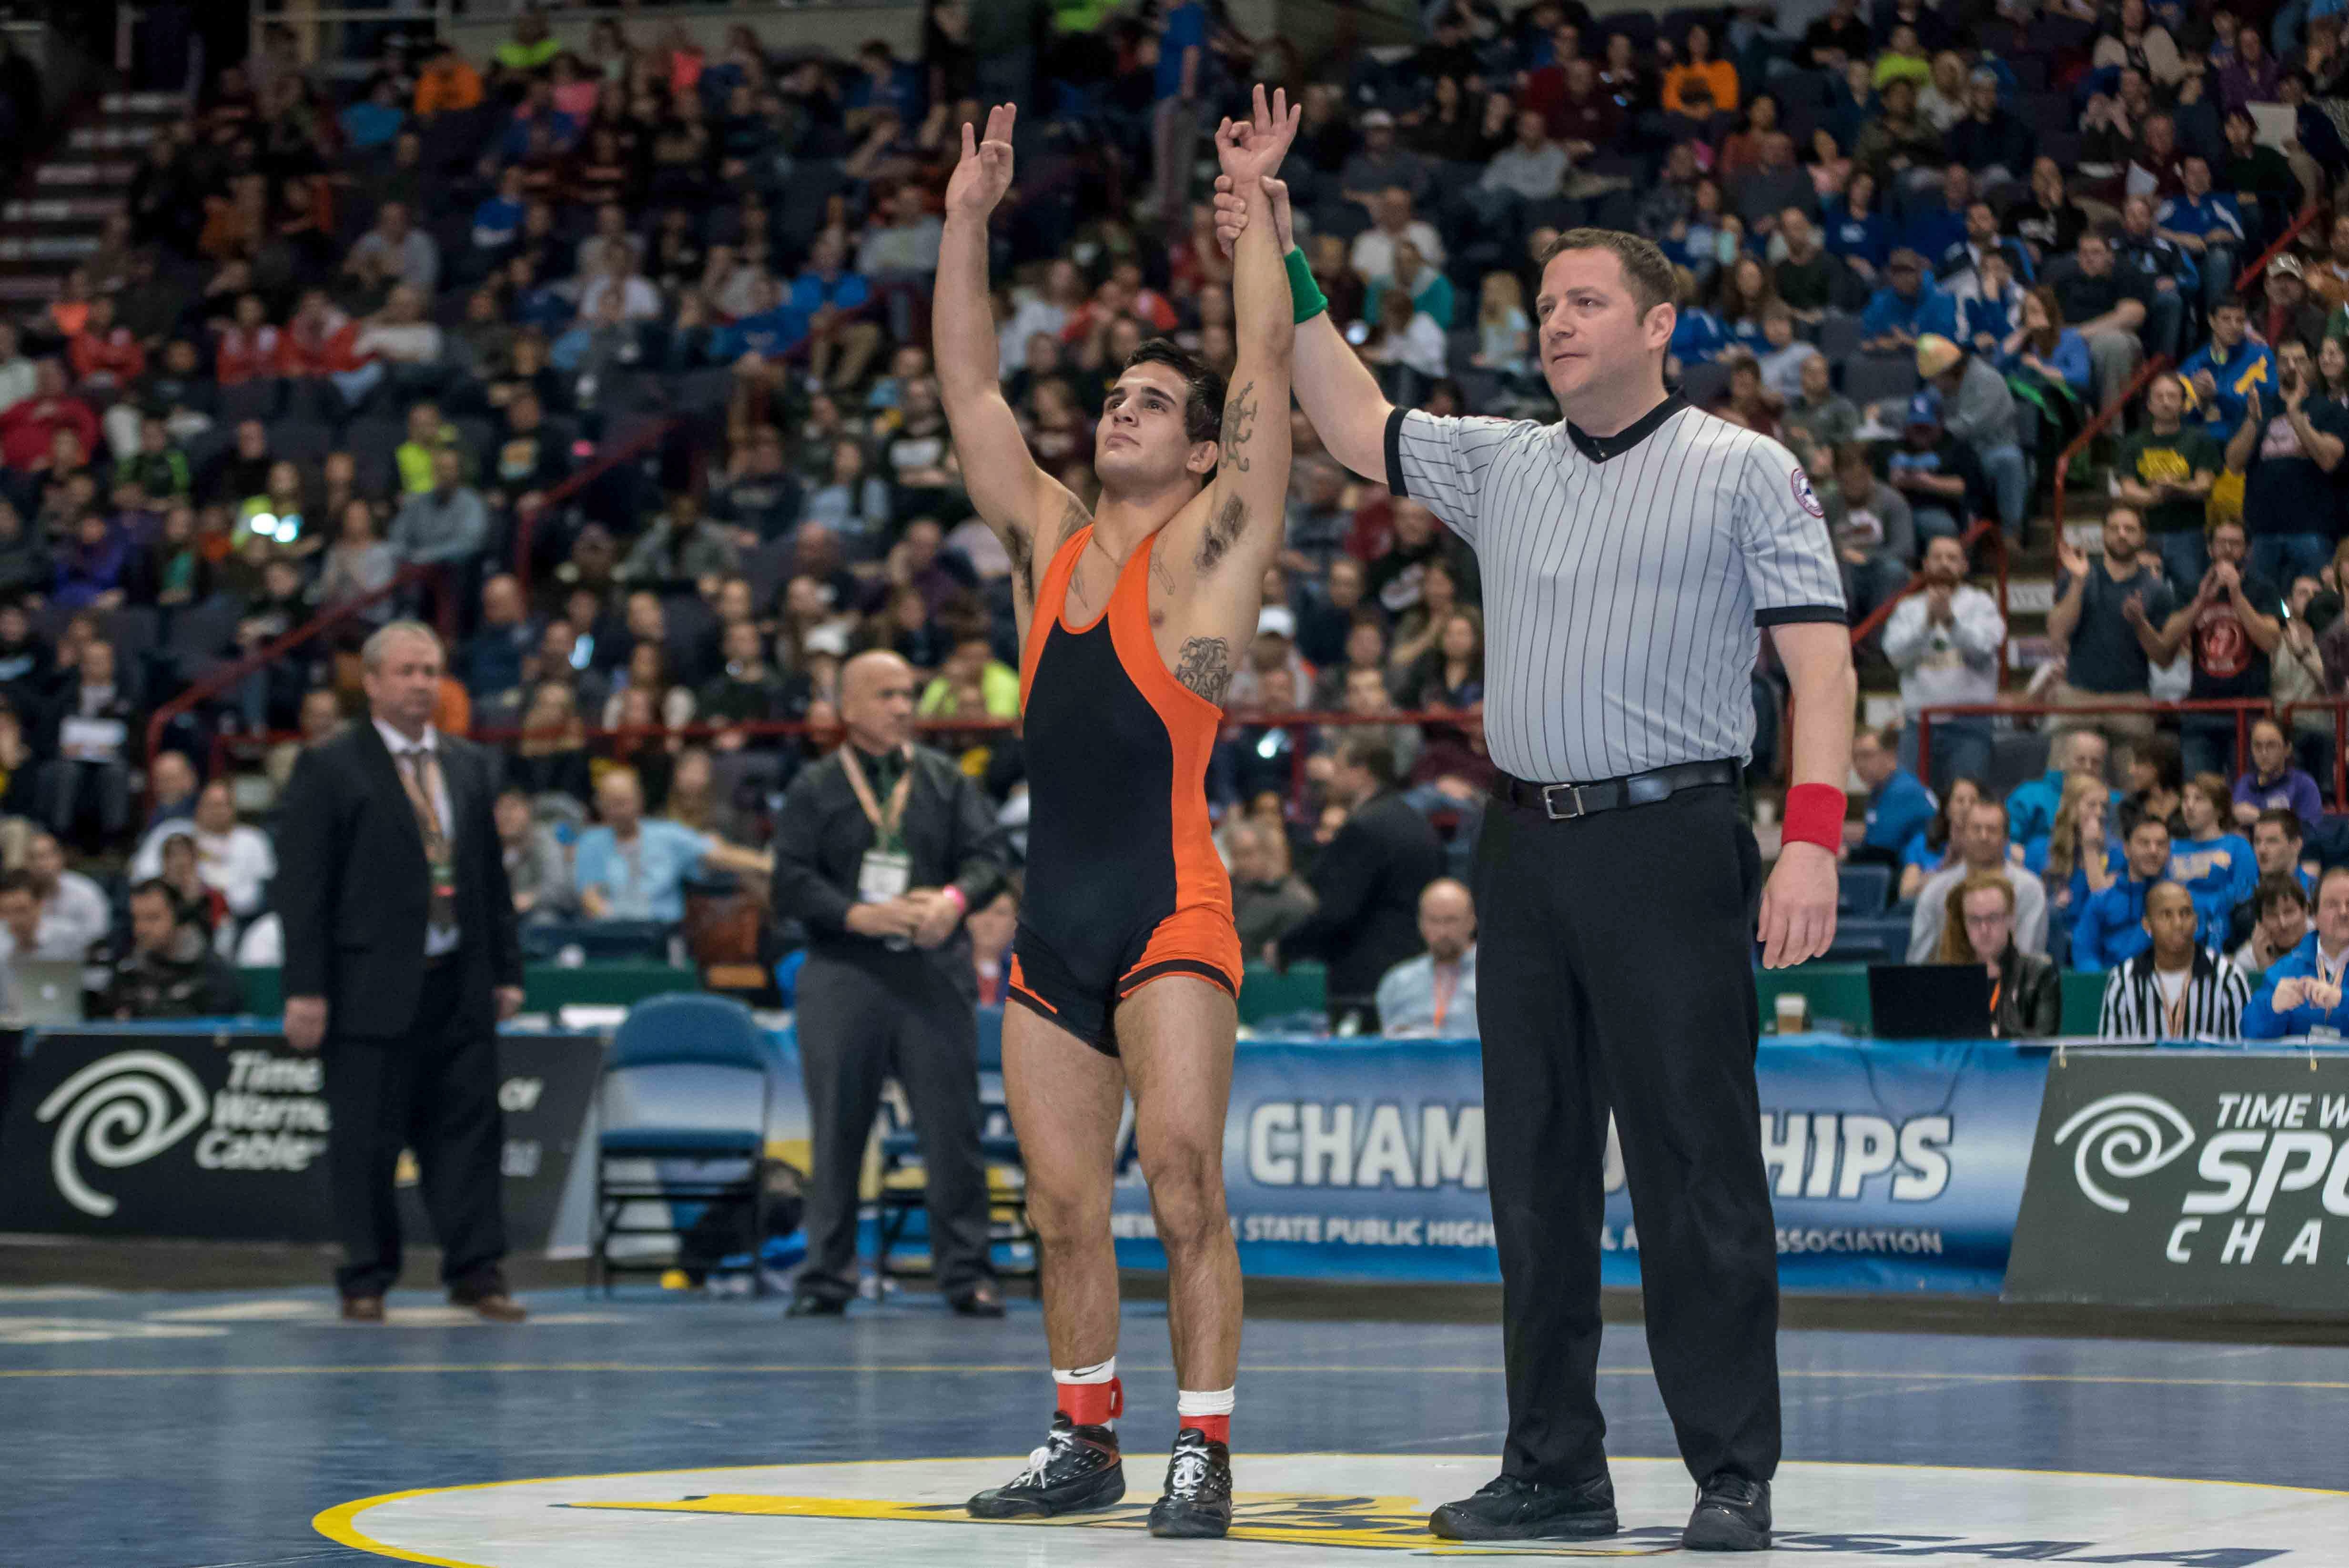 Kellen Devlin of Amherst celebrates winning the 132-pound Division II New York State Championship with a 9-0 win over Ryan O'Rourke of Adirondack.